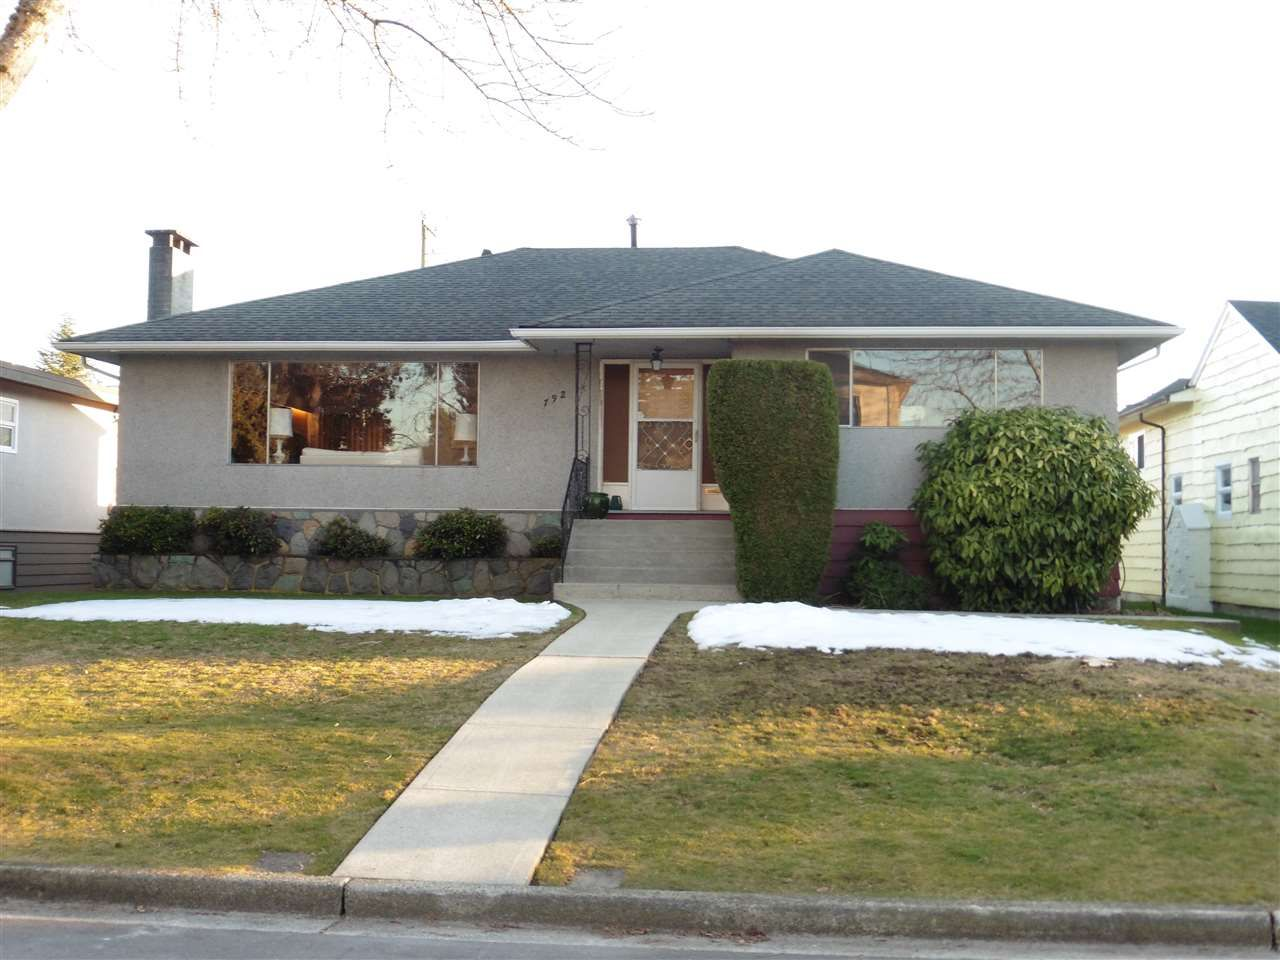 Main Photo: 792 W 46TH Avenue in Vancouver: Oakridge VW House for sale (Vancouver West)  : MLS®# R2345854